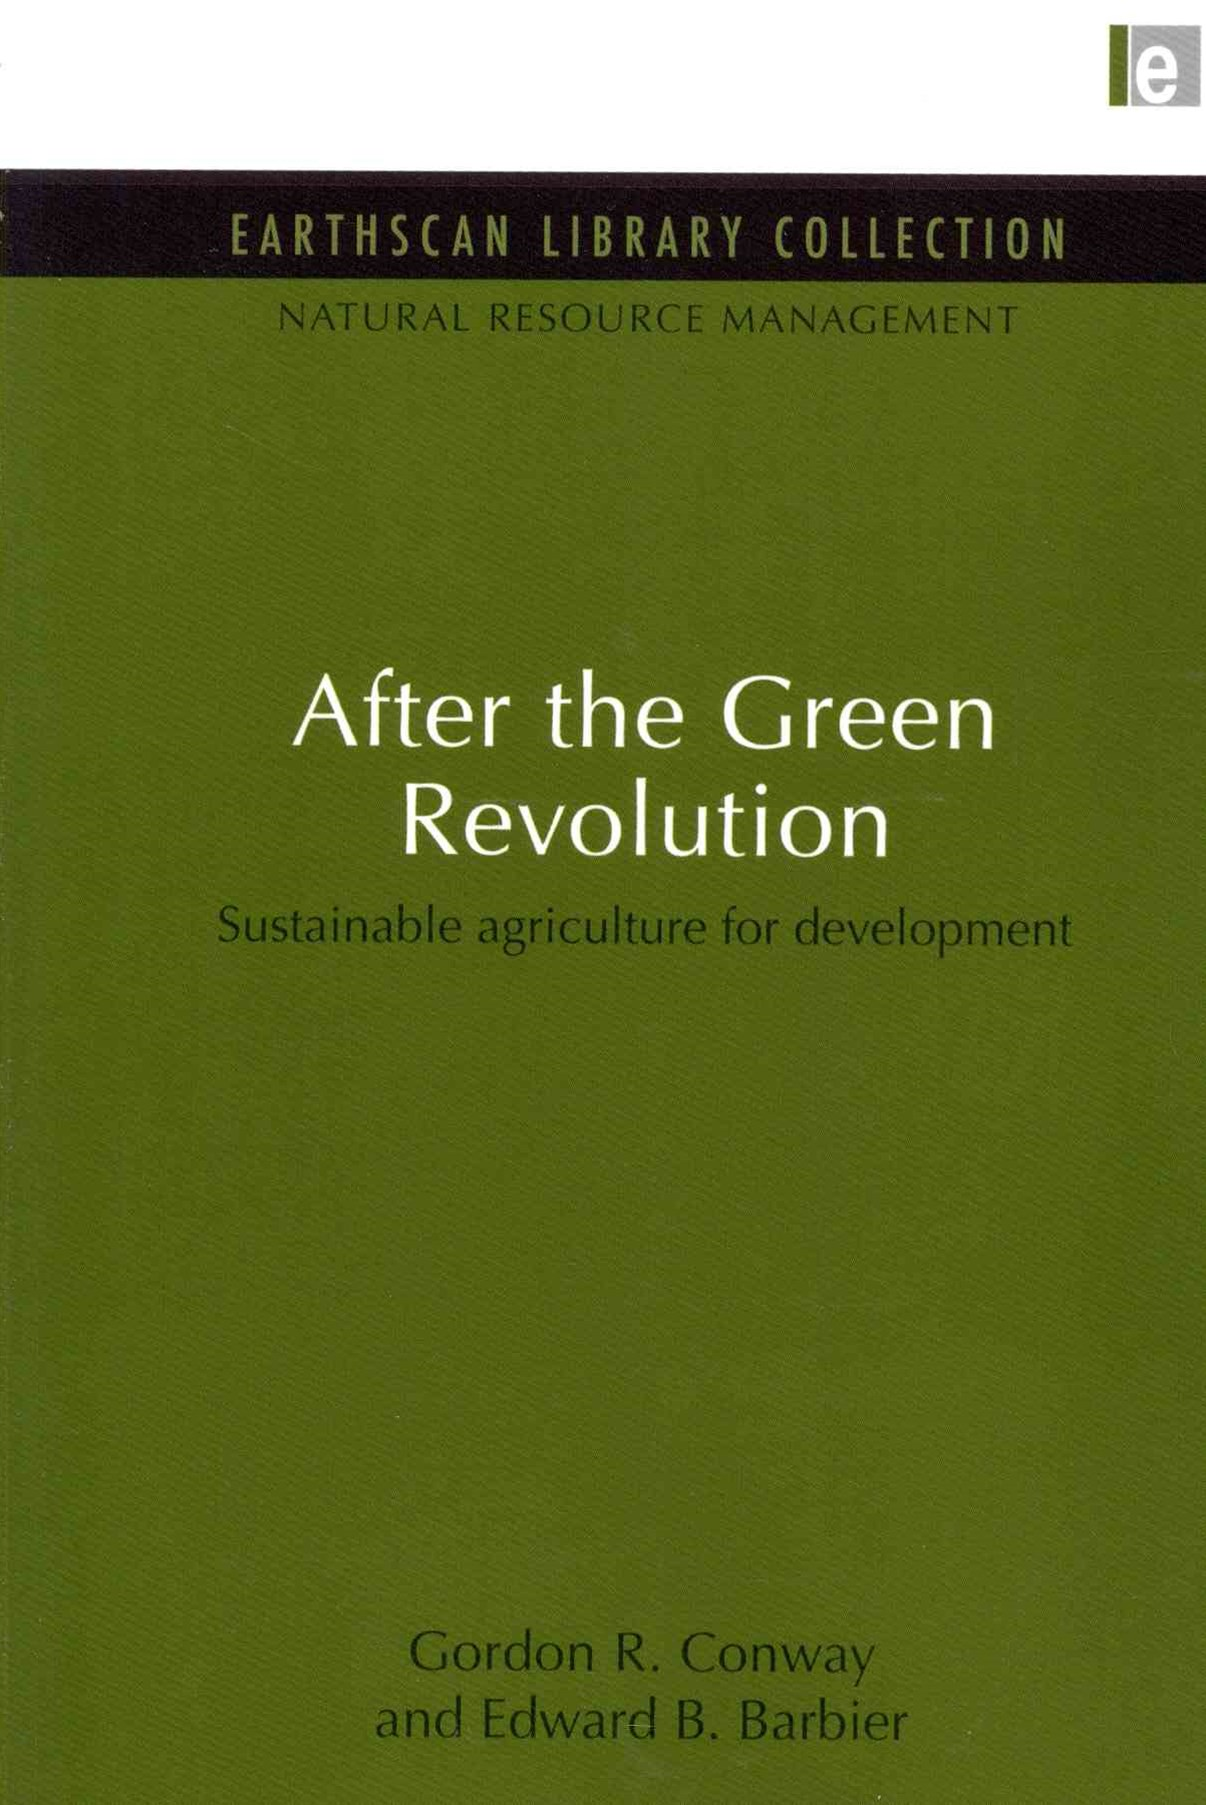 After the Green Revolution